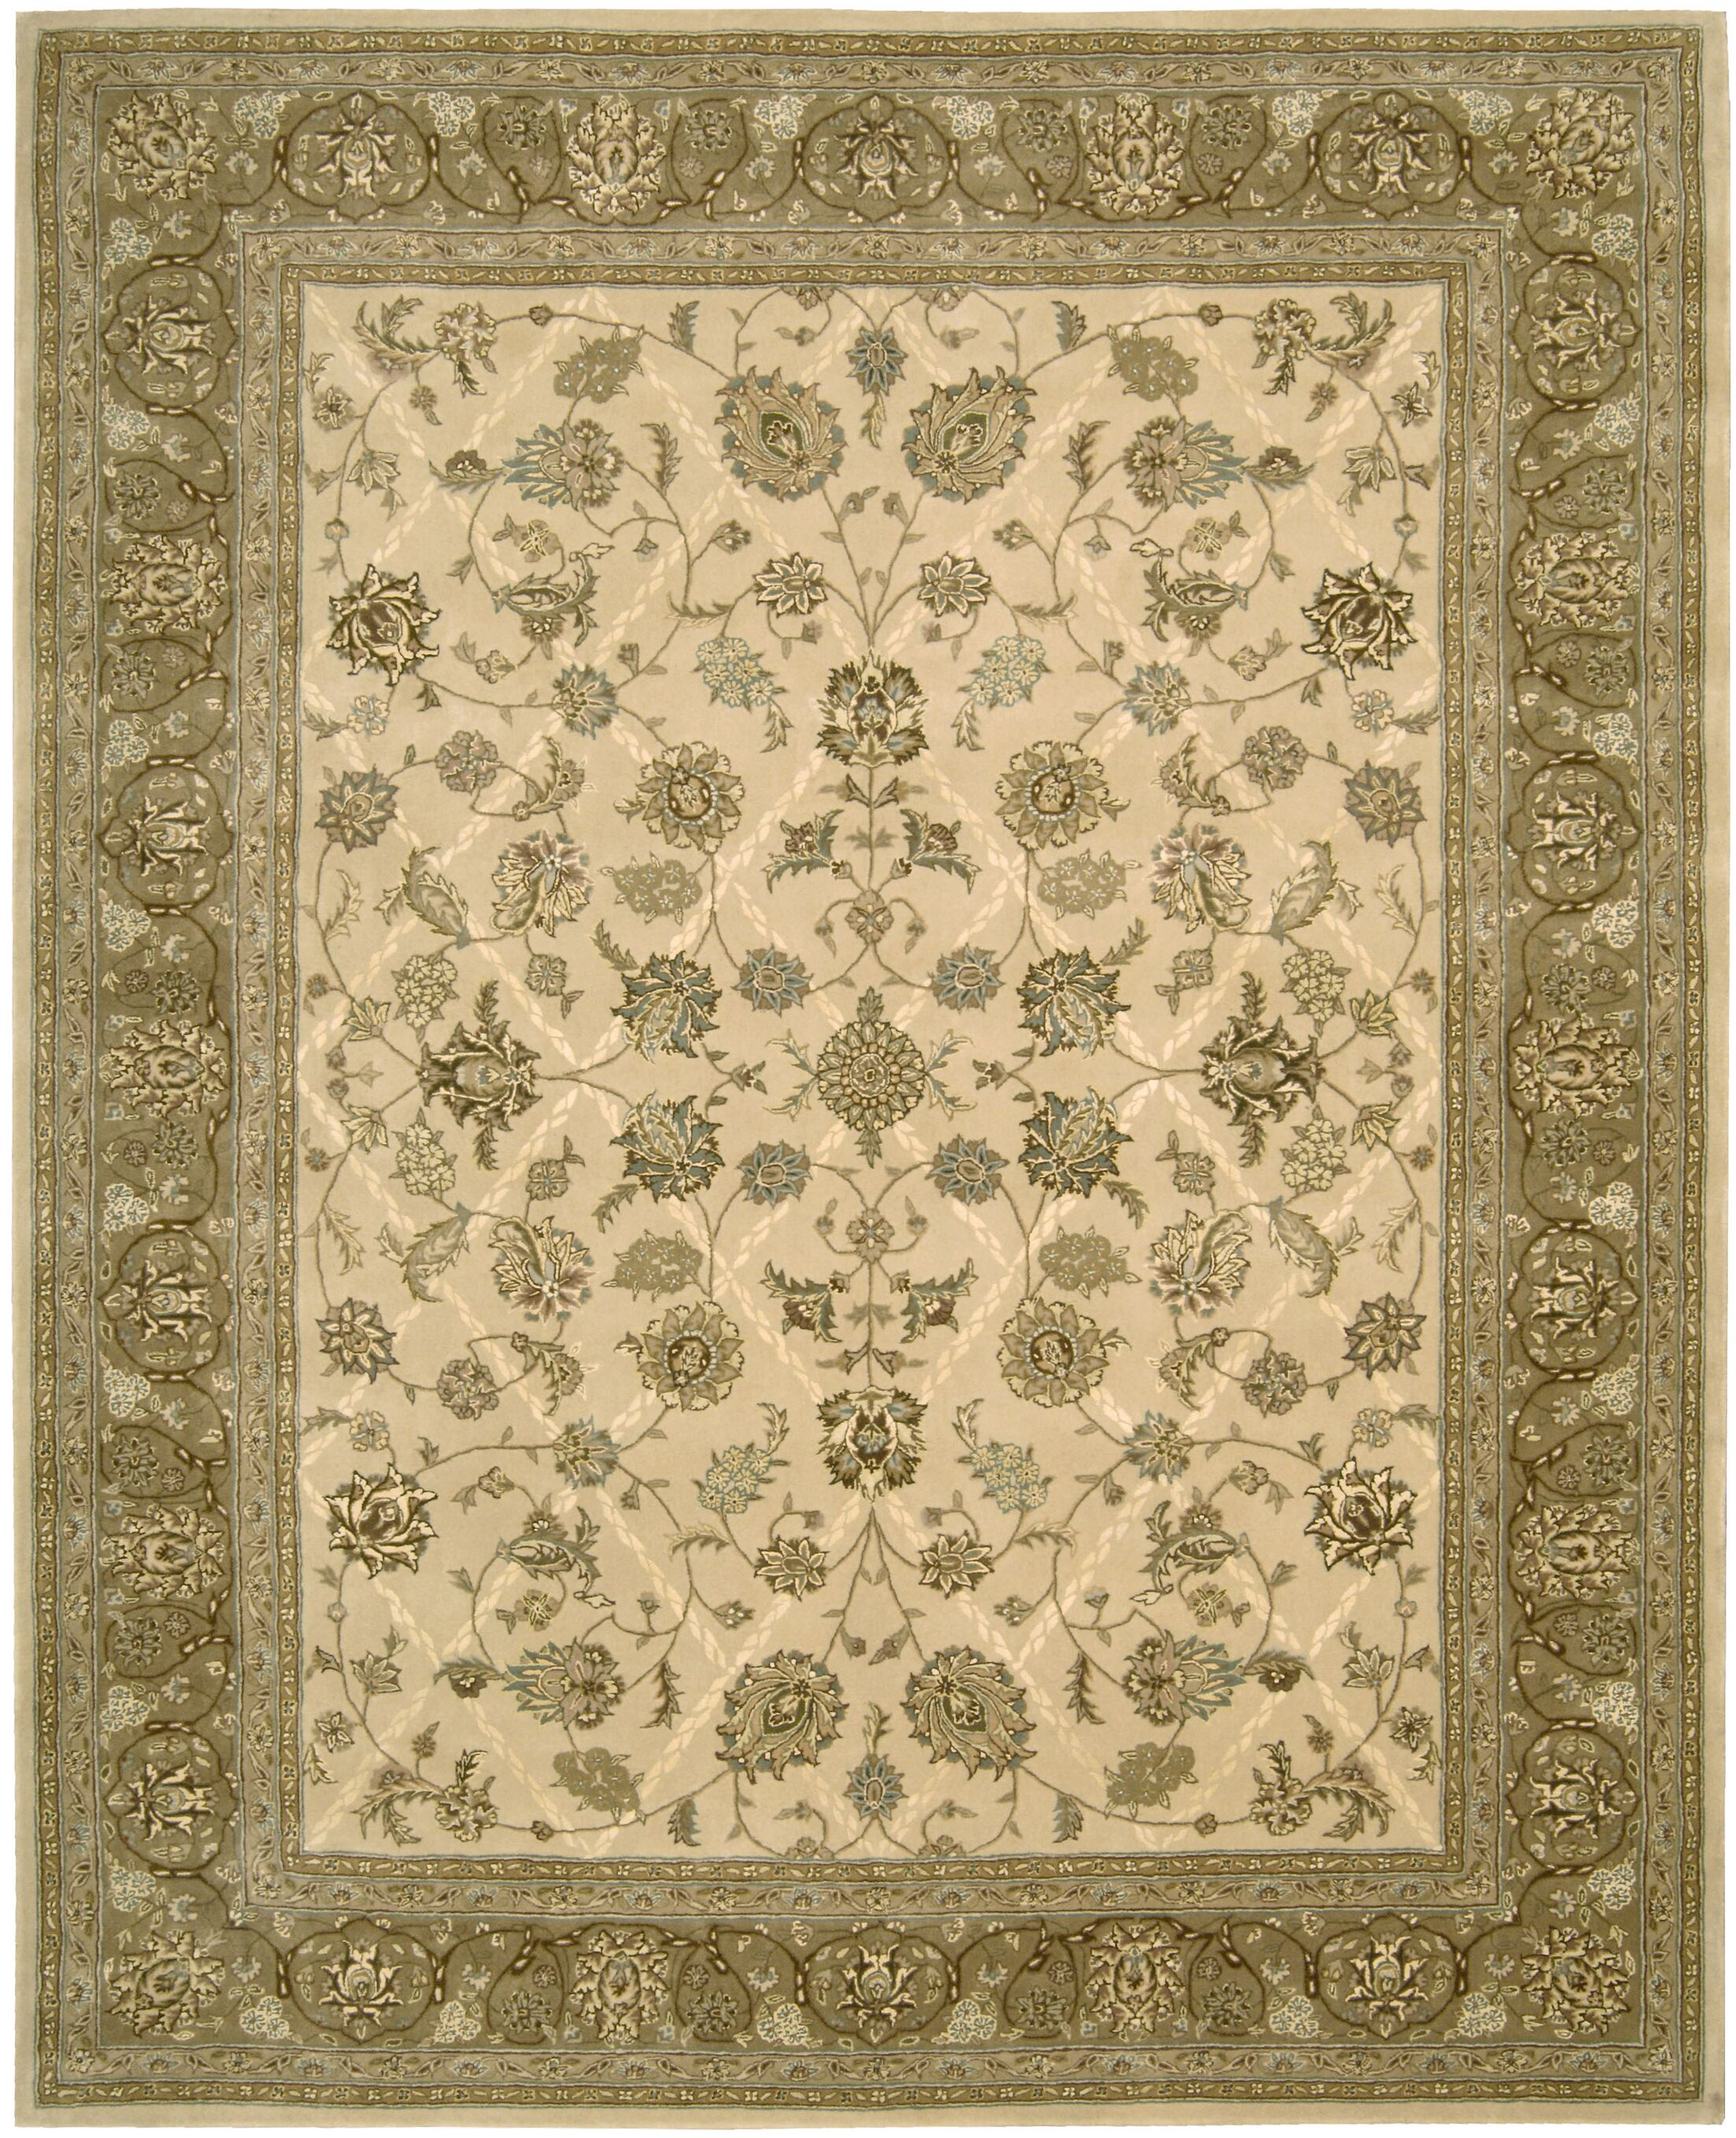 Garson Hand Woven Wool Ivory Indoor Area Rug Rug Size: Rectangle 7'9